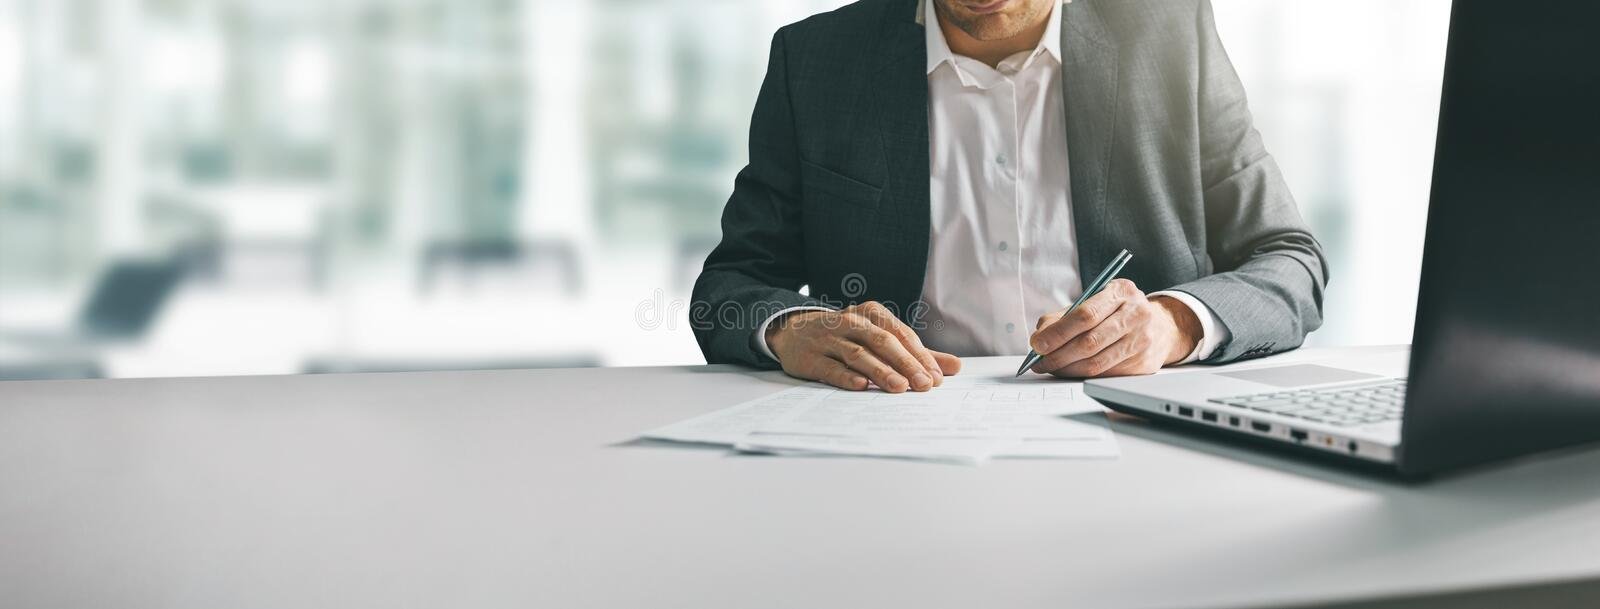 Young man in suit writing business papers at desk in modern coworking office stock photos